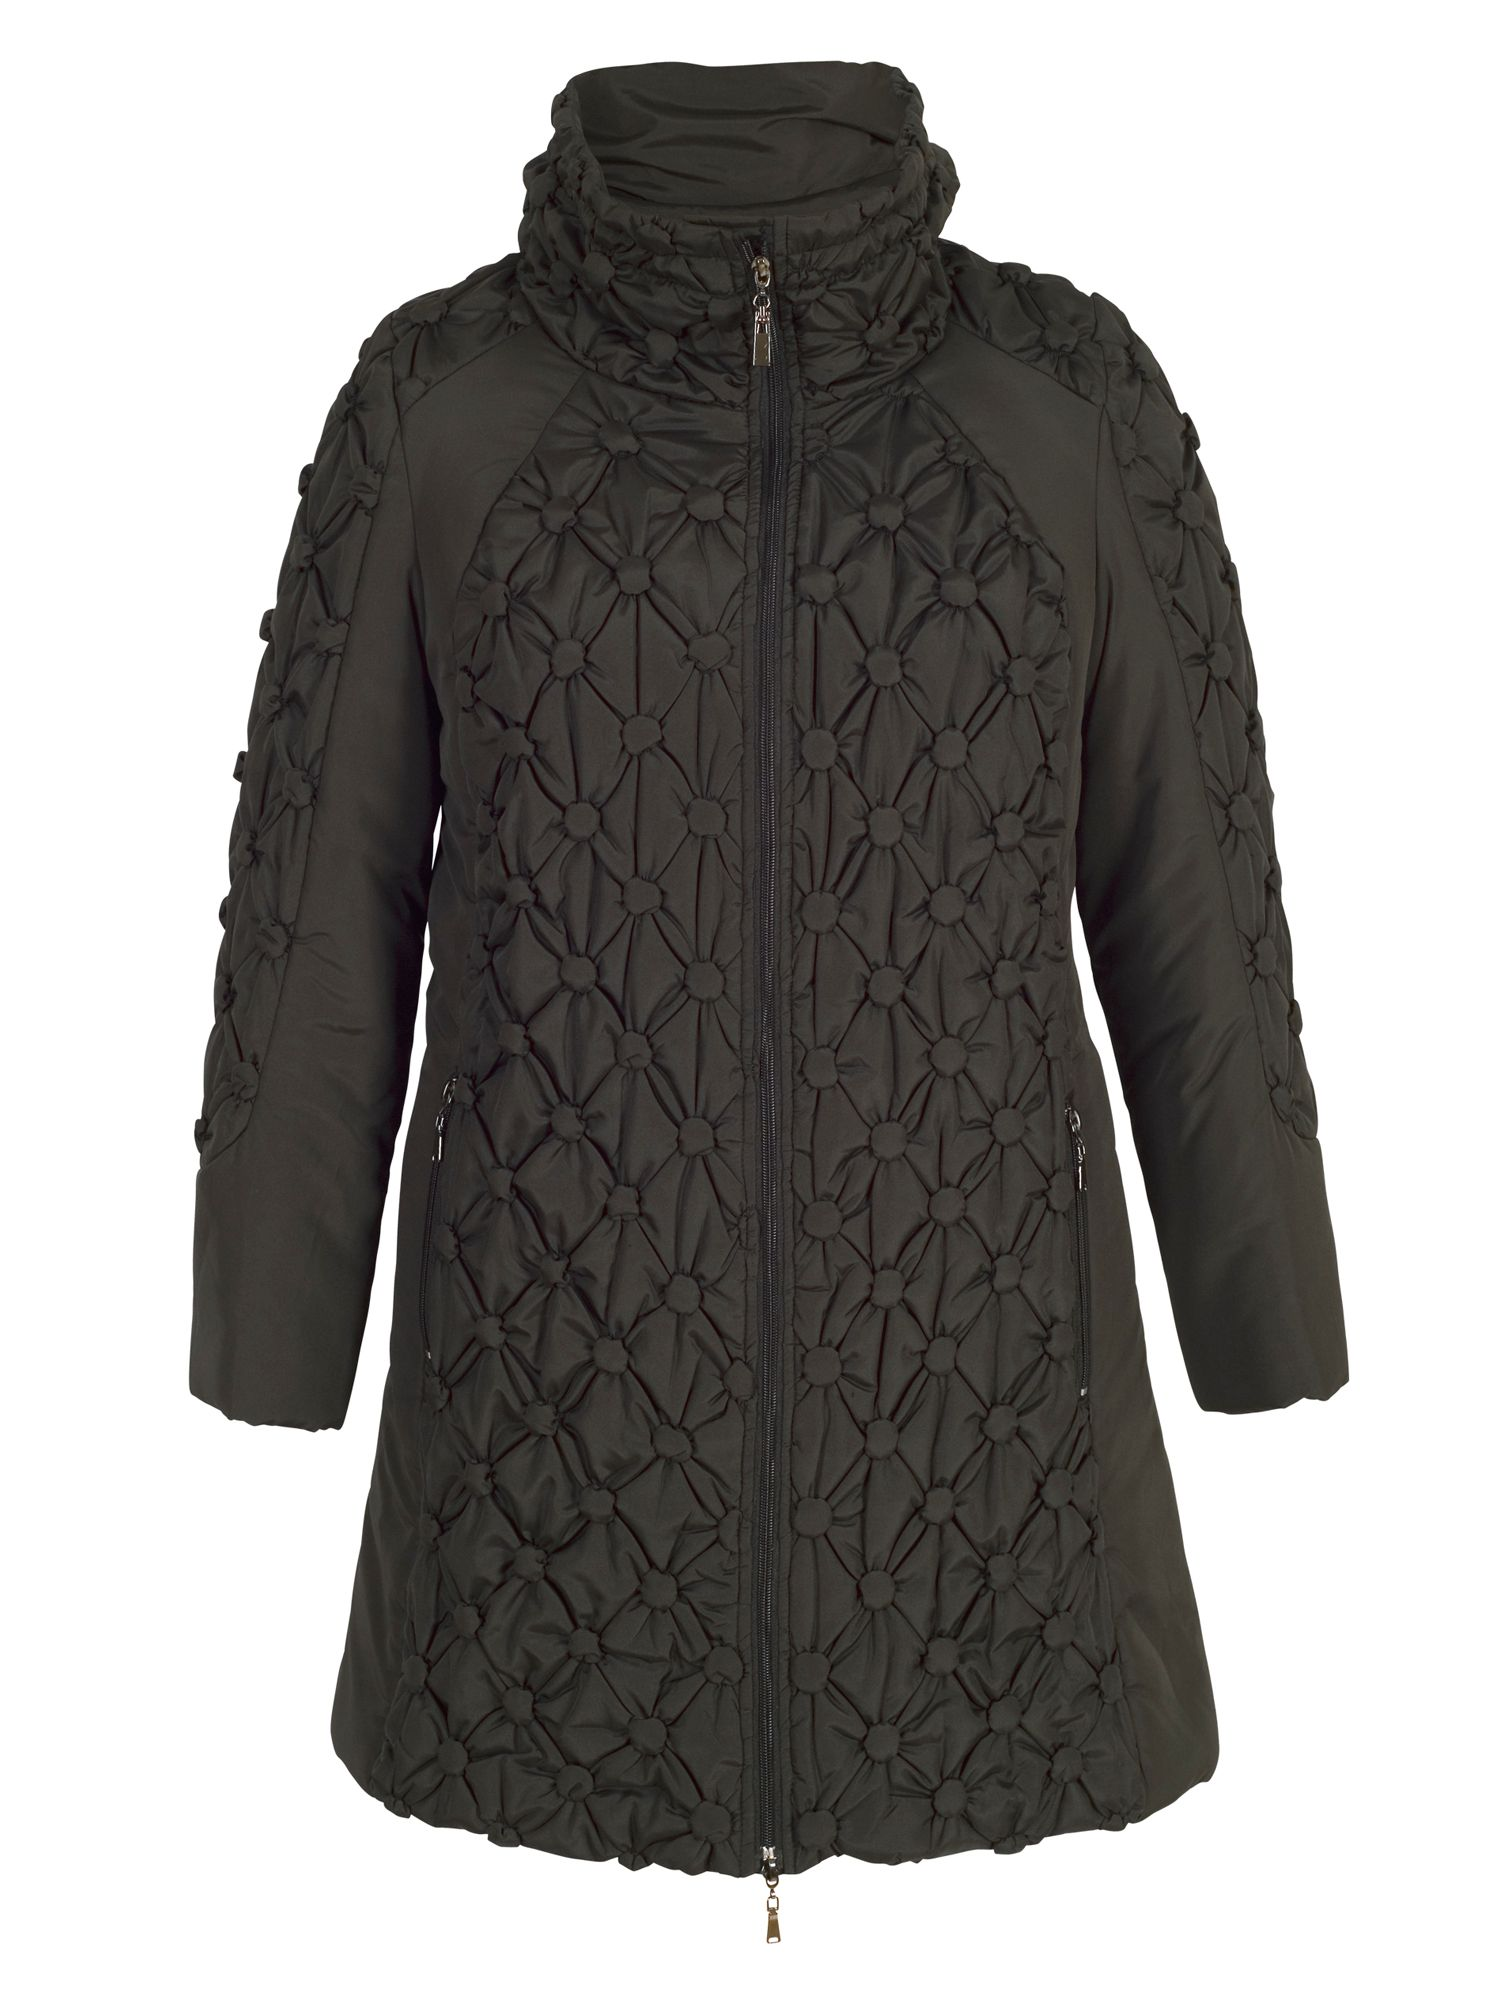 Chesca Quilted Coat with Button Detailing, Black